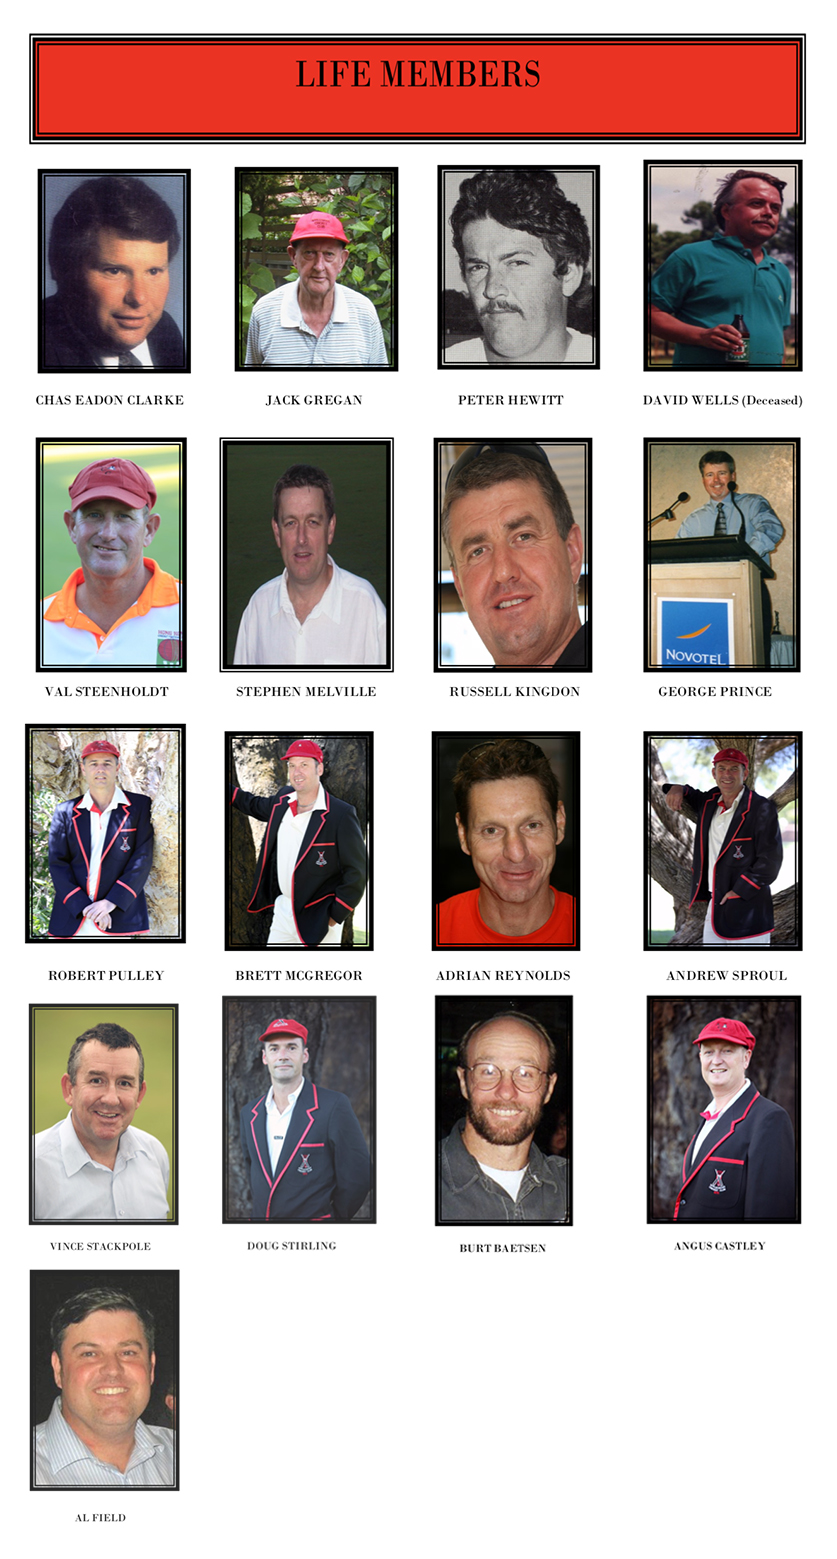 ACC LIFE MEMBERS - At the ACC we take great pride in our history and the 17 men listed to the left have shaped our great club both on and off the field. Al 'Cheese Field was the last man inducted on presentation night 2018/19.